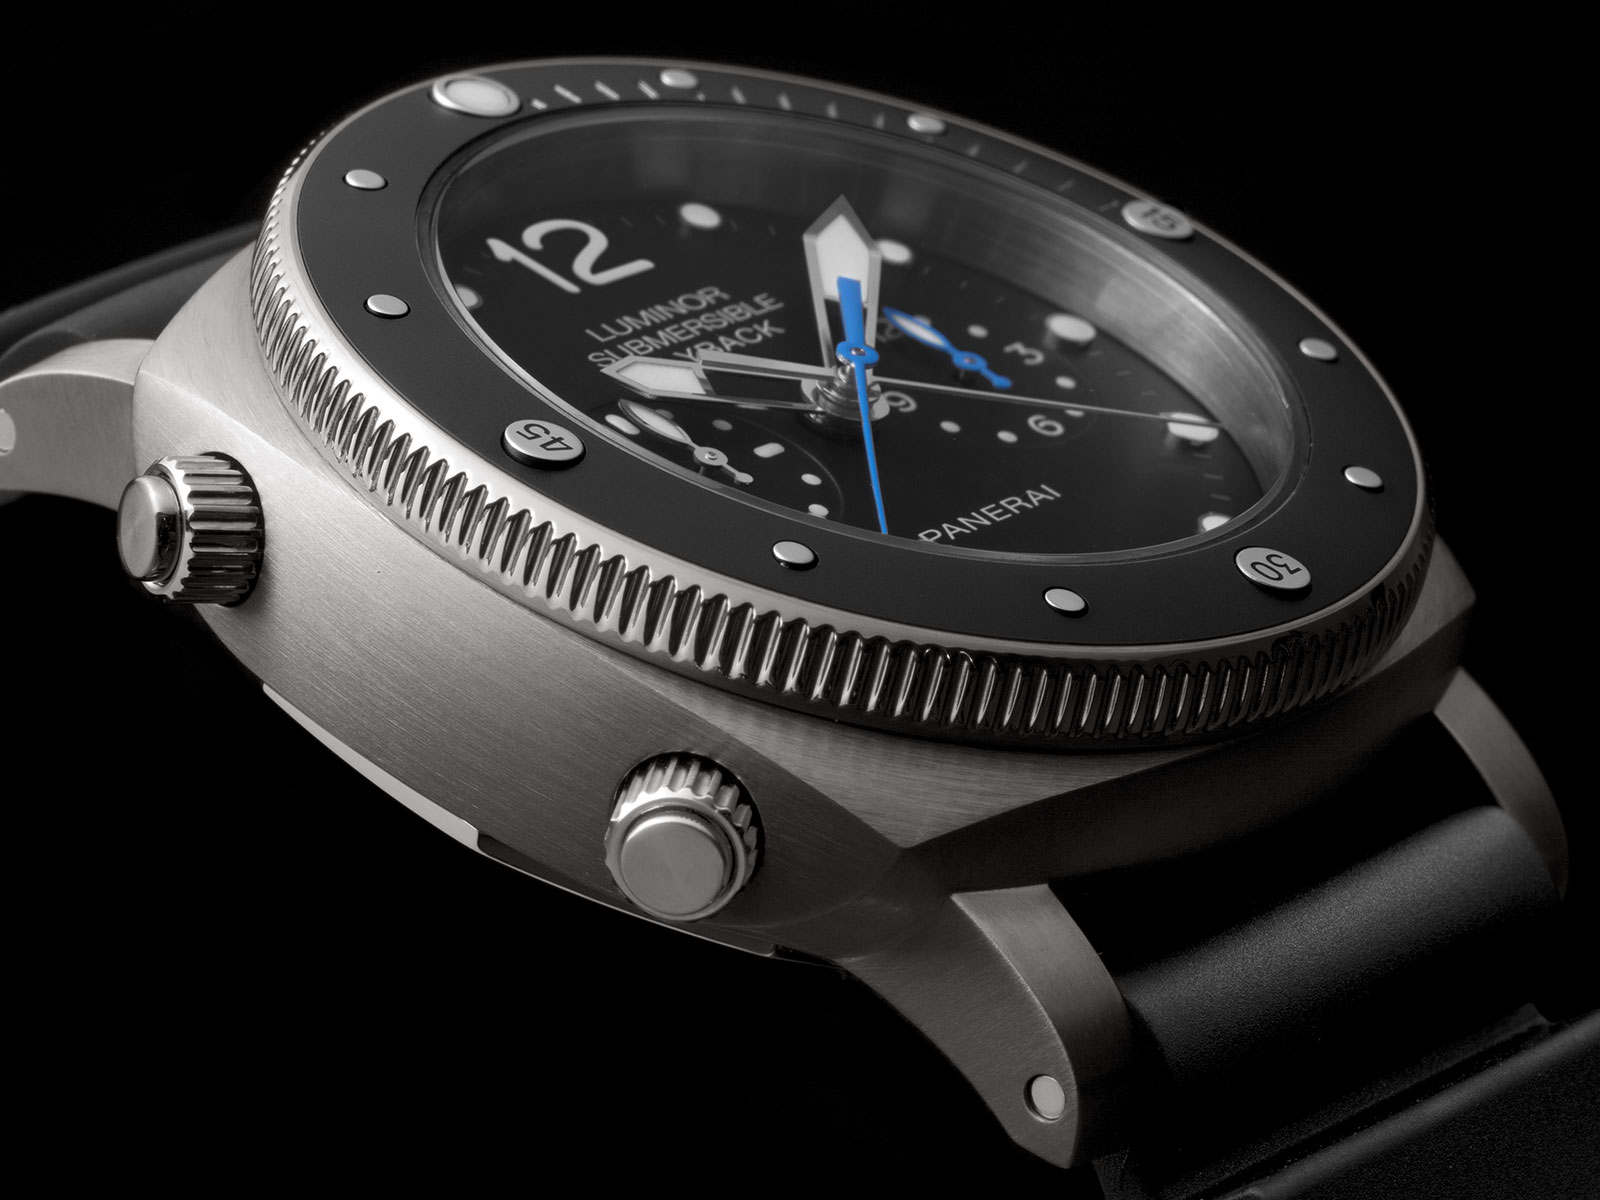 Panerai Luminor Submersible 1950 Chrono Flyback Automatic Titanio - 500 тысяч гривен